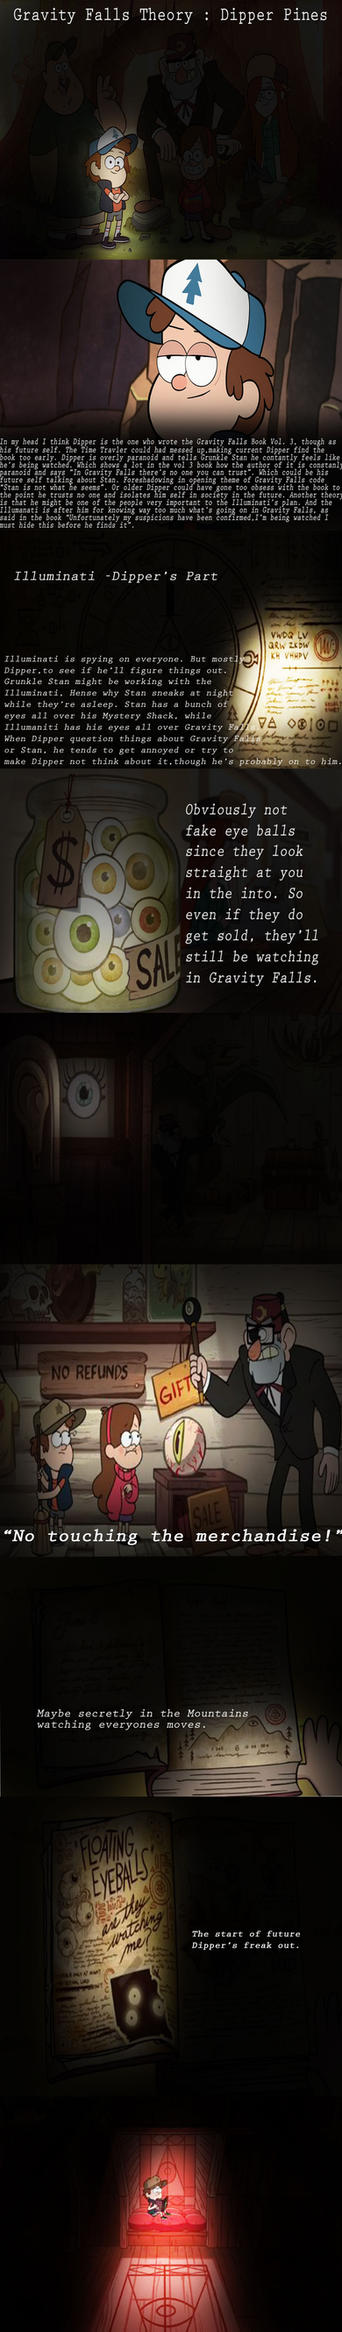 Gravity Falls Character Theory - Dipper Pines by vaness96